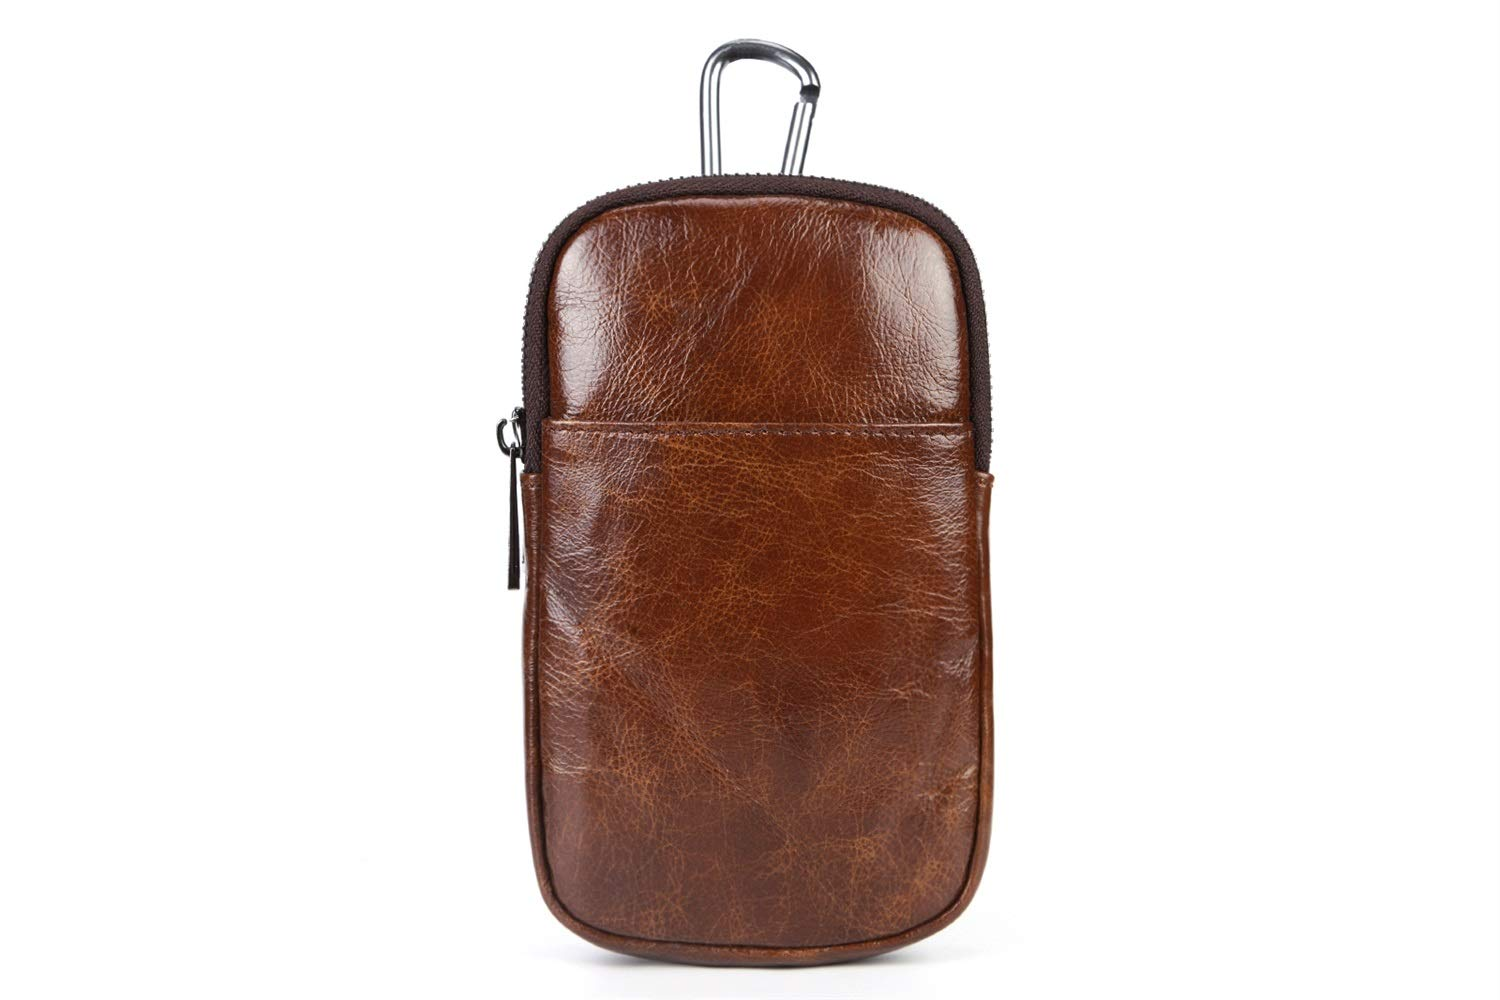 Mobile Phone Bag 2018 New Mens Pockets Double-Layer Main Bag GROSSARTIG First Layer Cowhide Hanging Neck Bag Color : Brown, Size : S